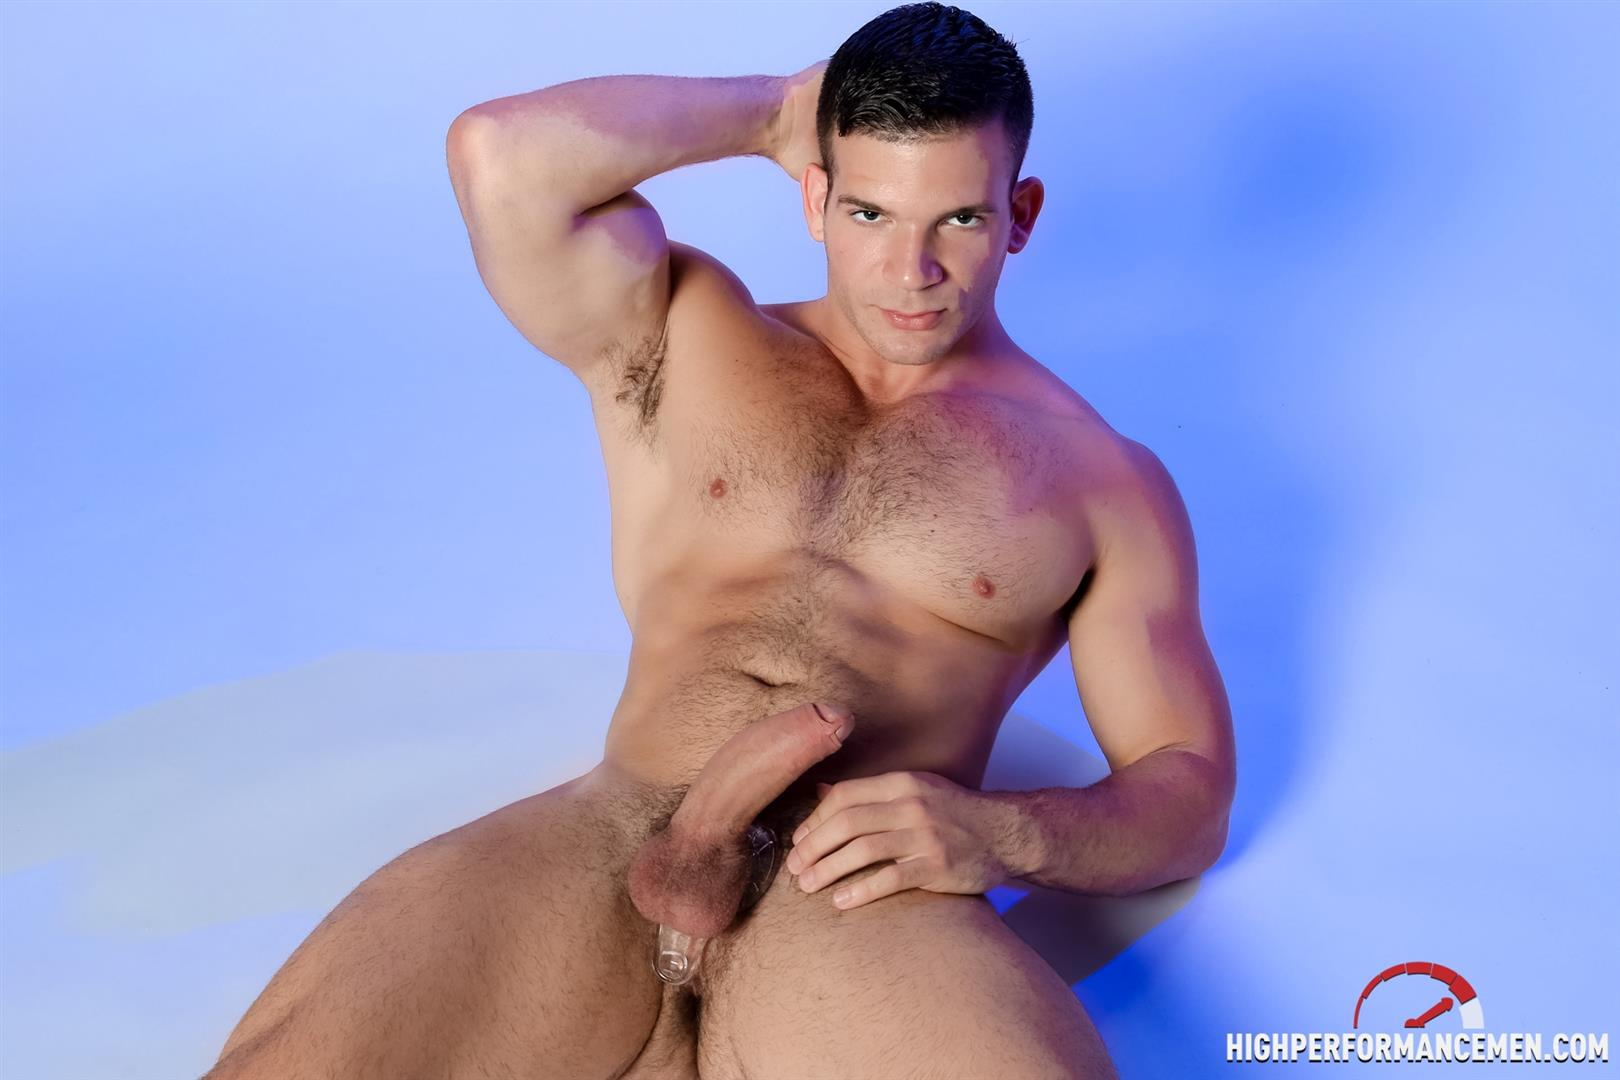 latin muscle gay porn Views: 0 4:14.